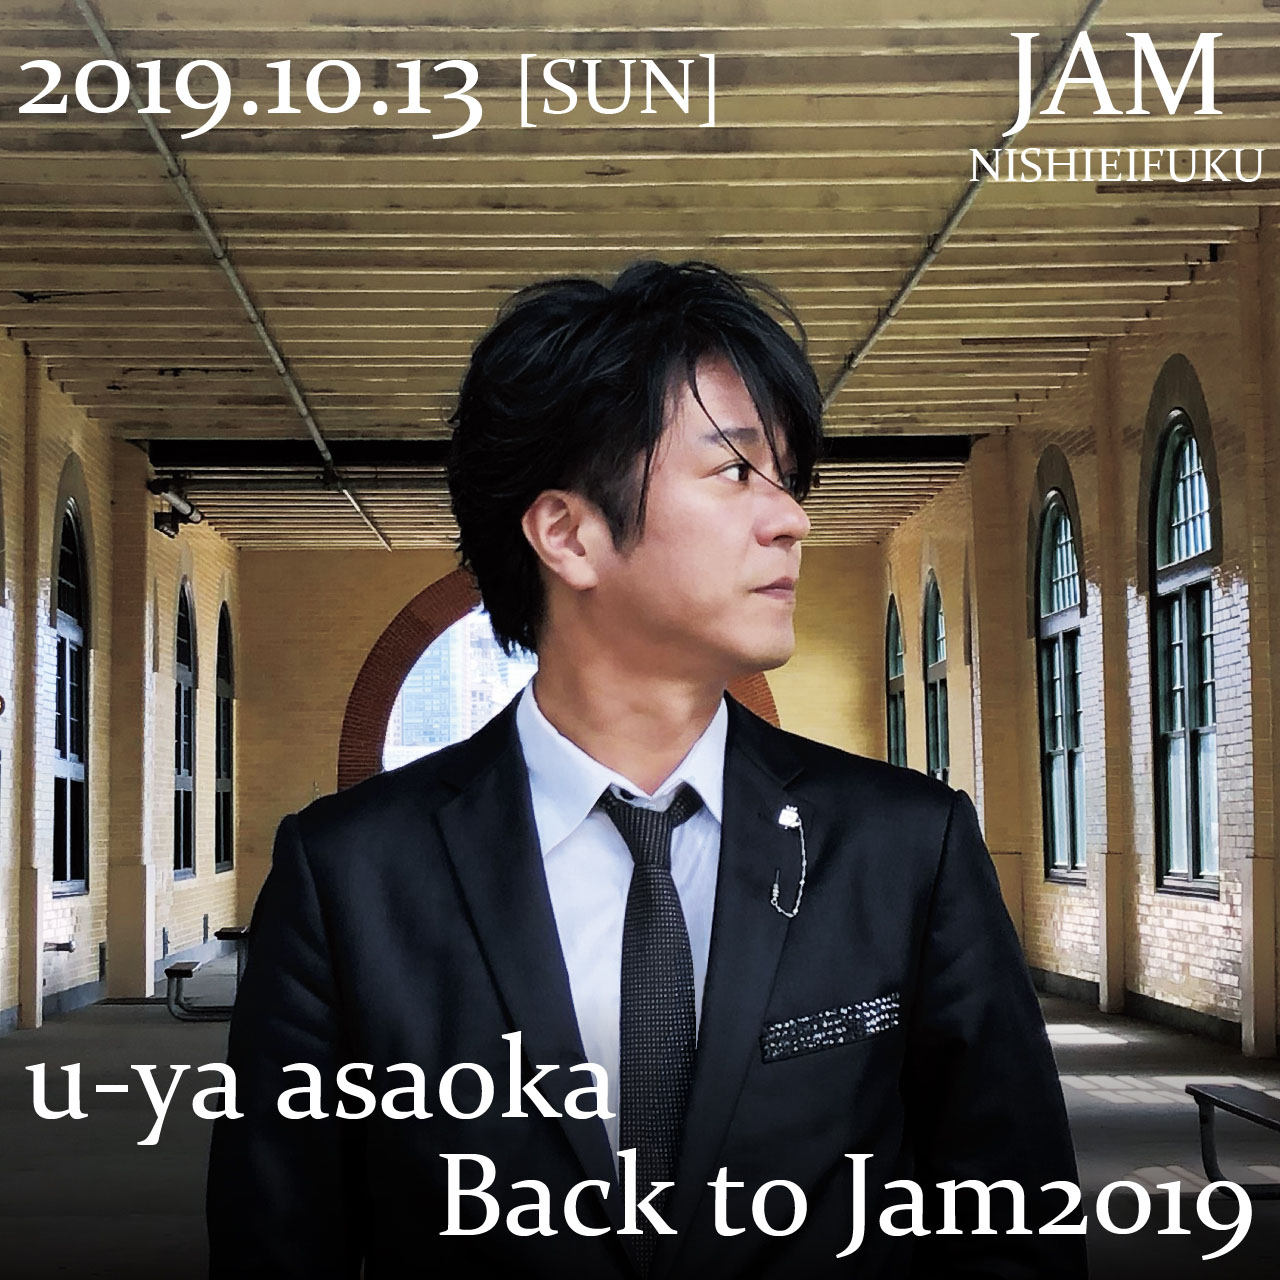 u-ya asaoka Back to Jam2019 (一般販売)